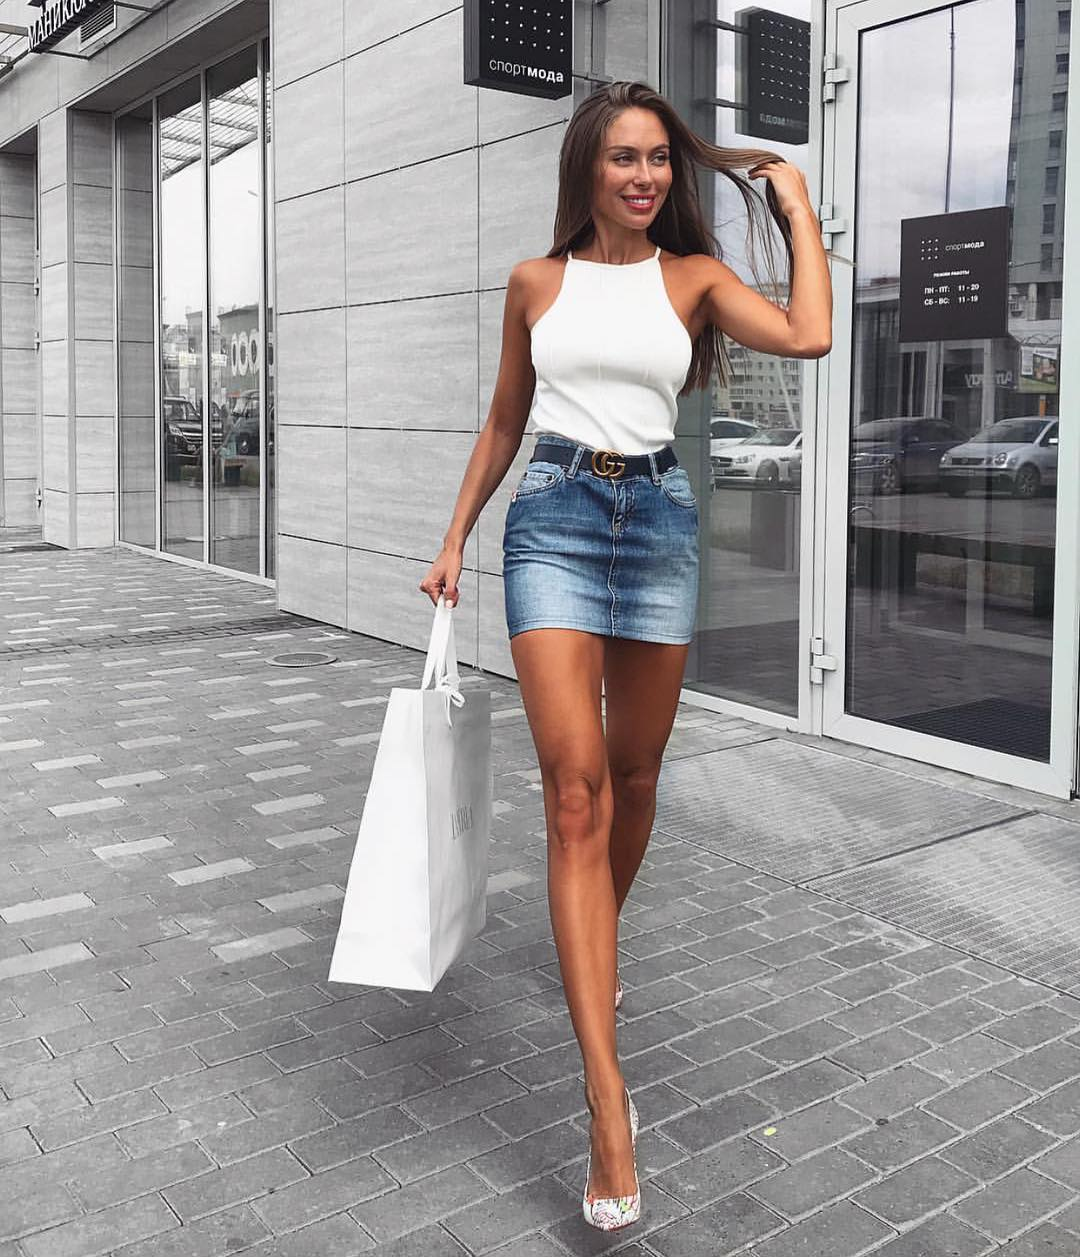 White Halter Neck Tank Top And Denim Mini Skirt For Summer 2019